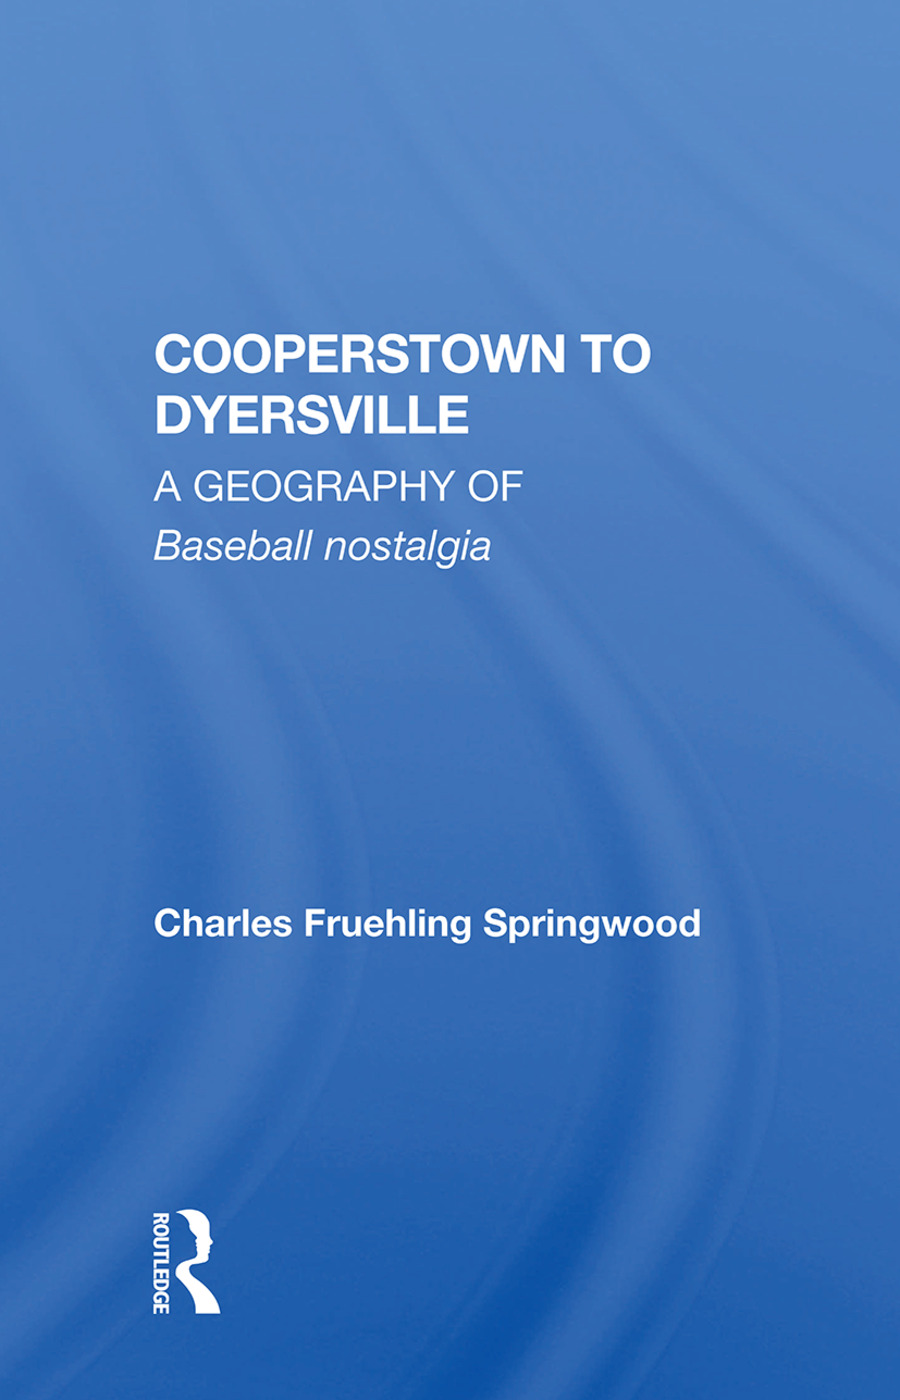 Cooperstown to Dyersville: A Geography of Baseball Nostalgia book cover